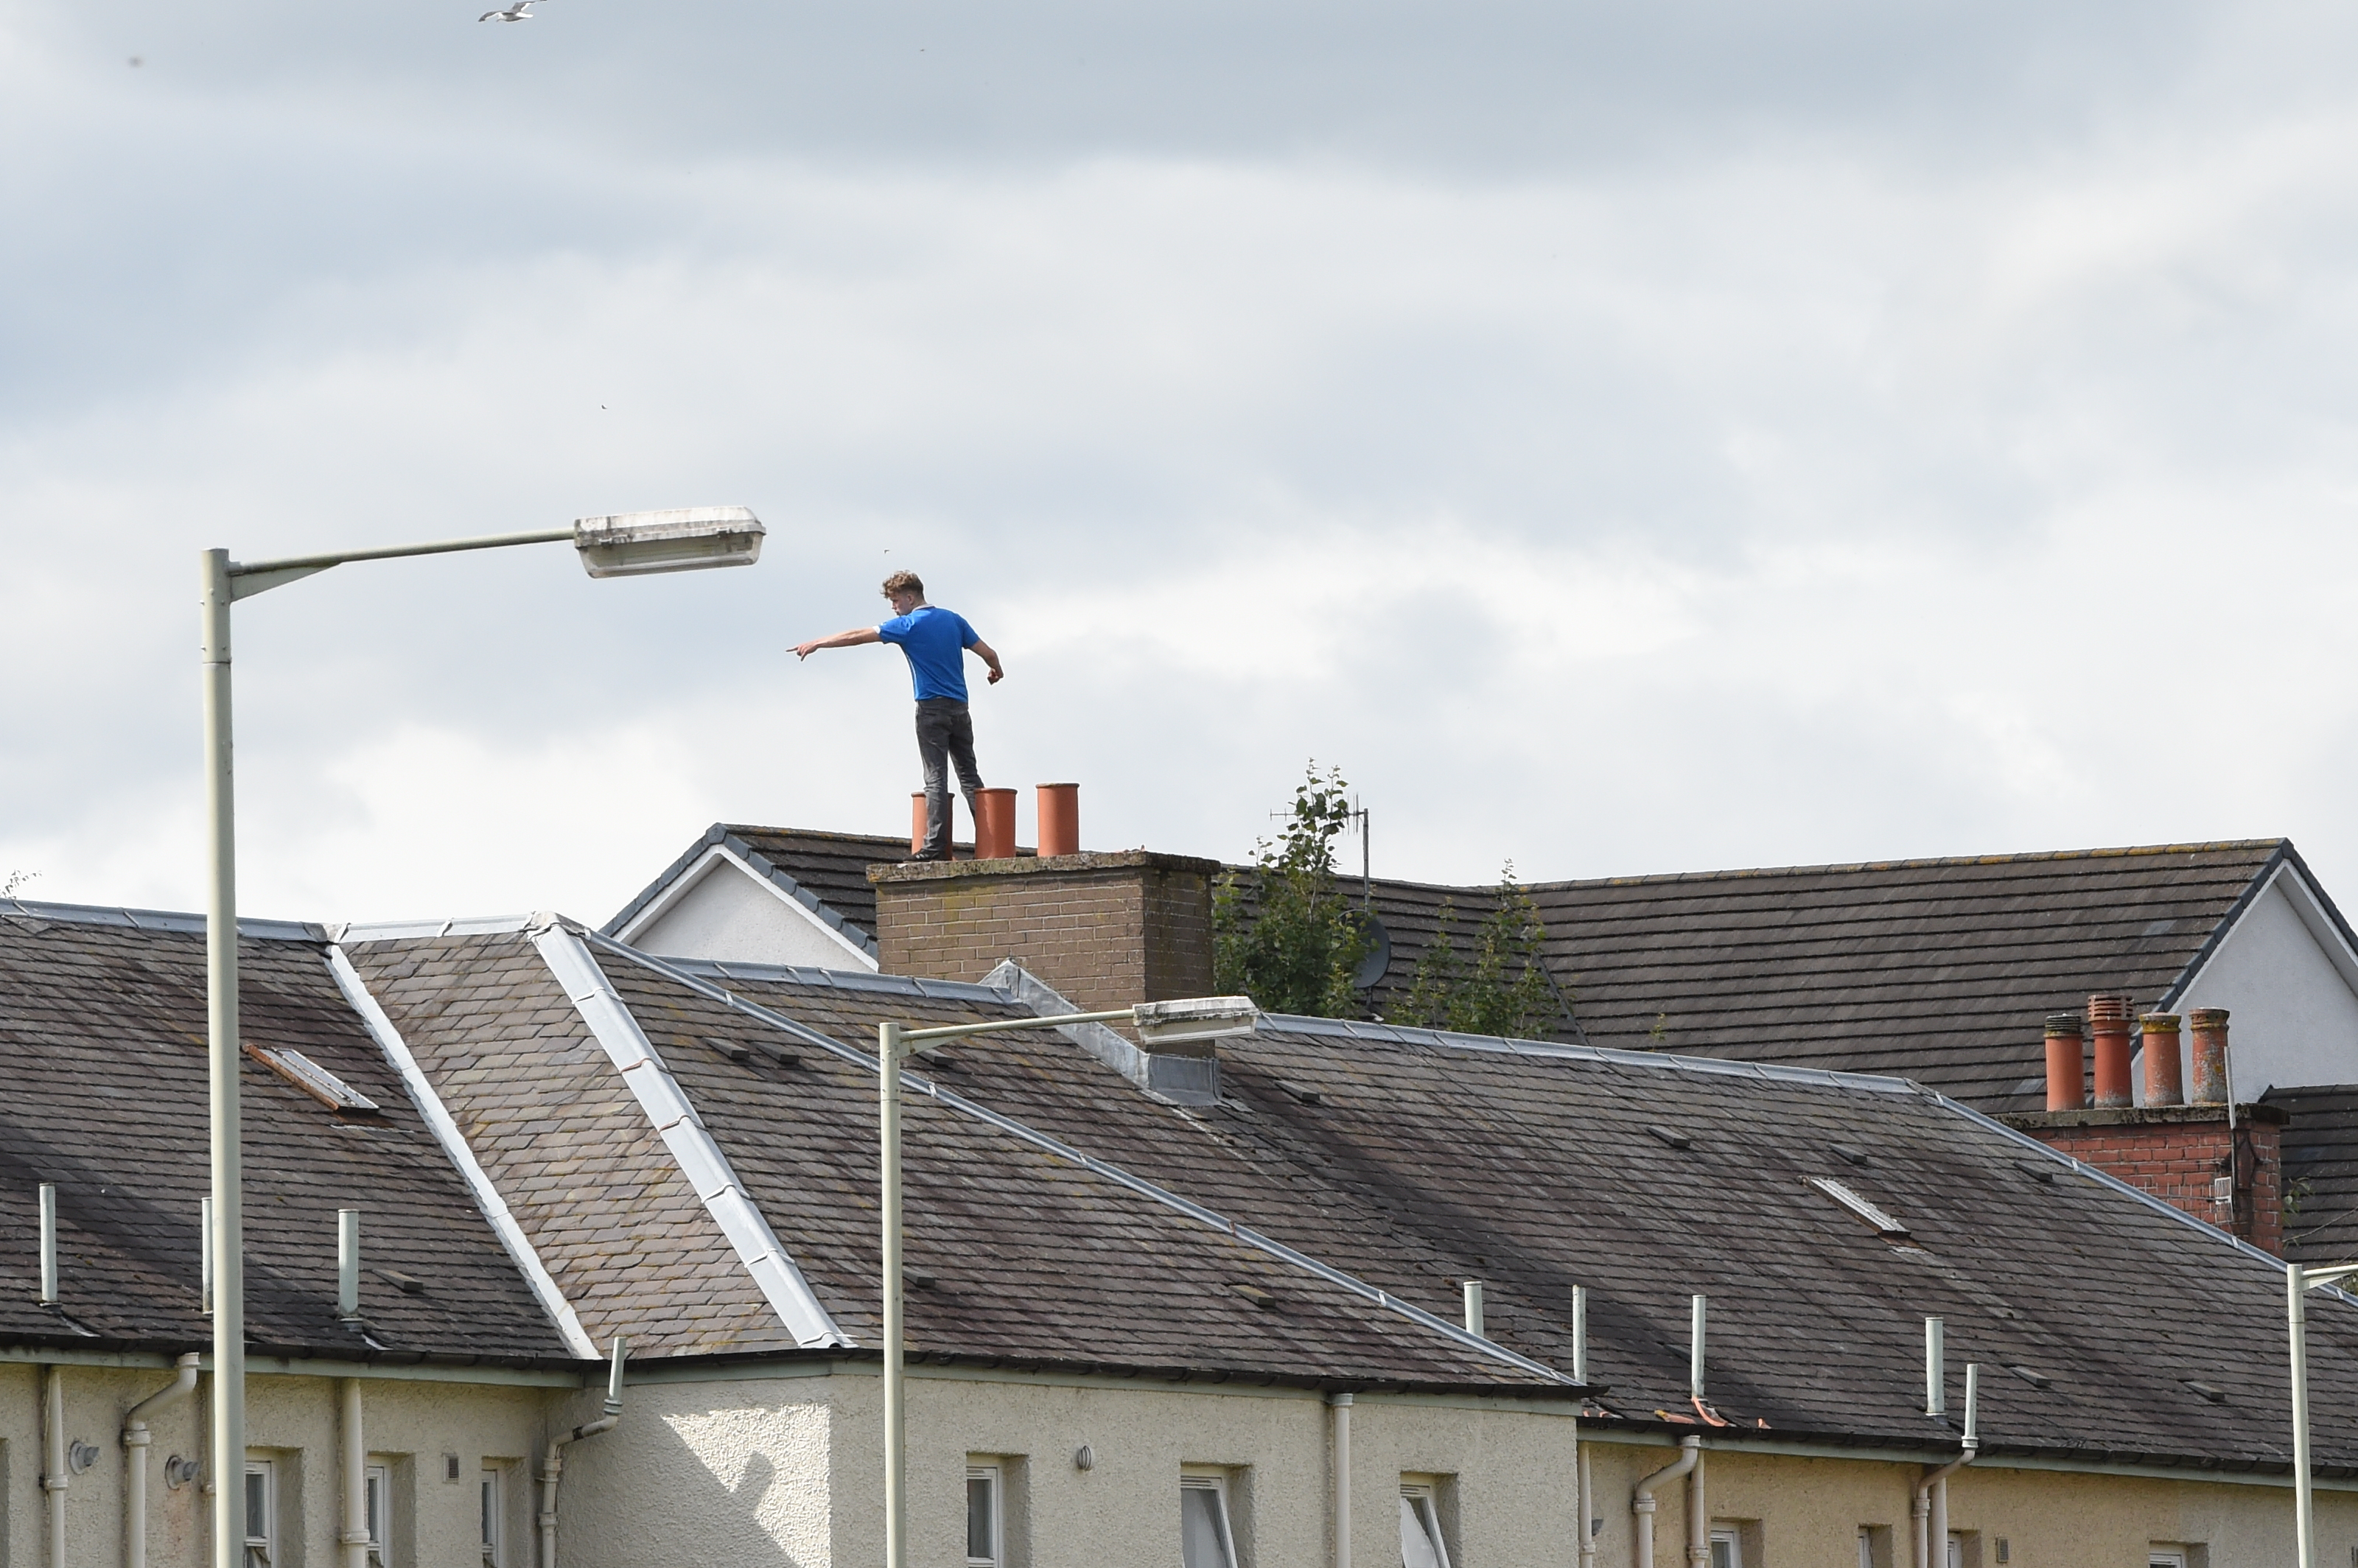 Danny Stewart was on the roof for around seven hours.